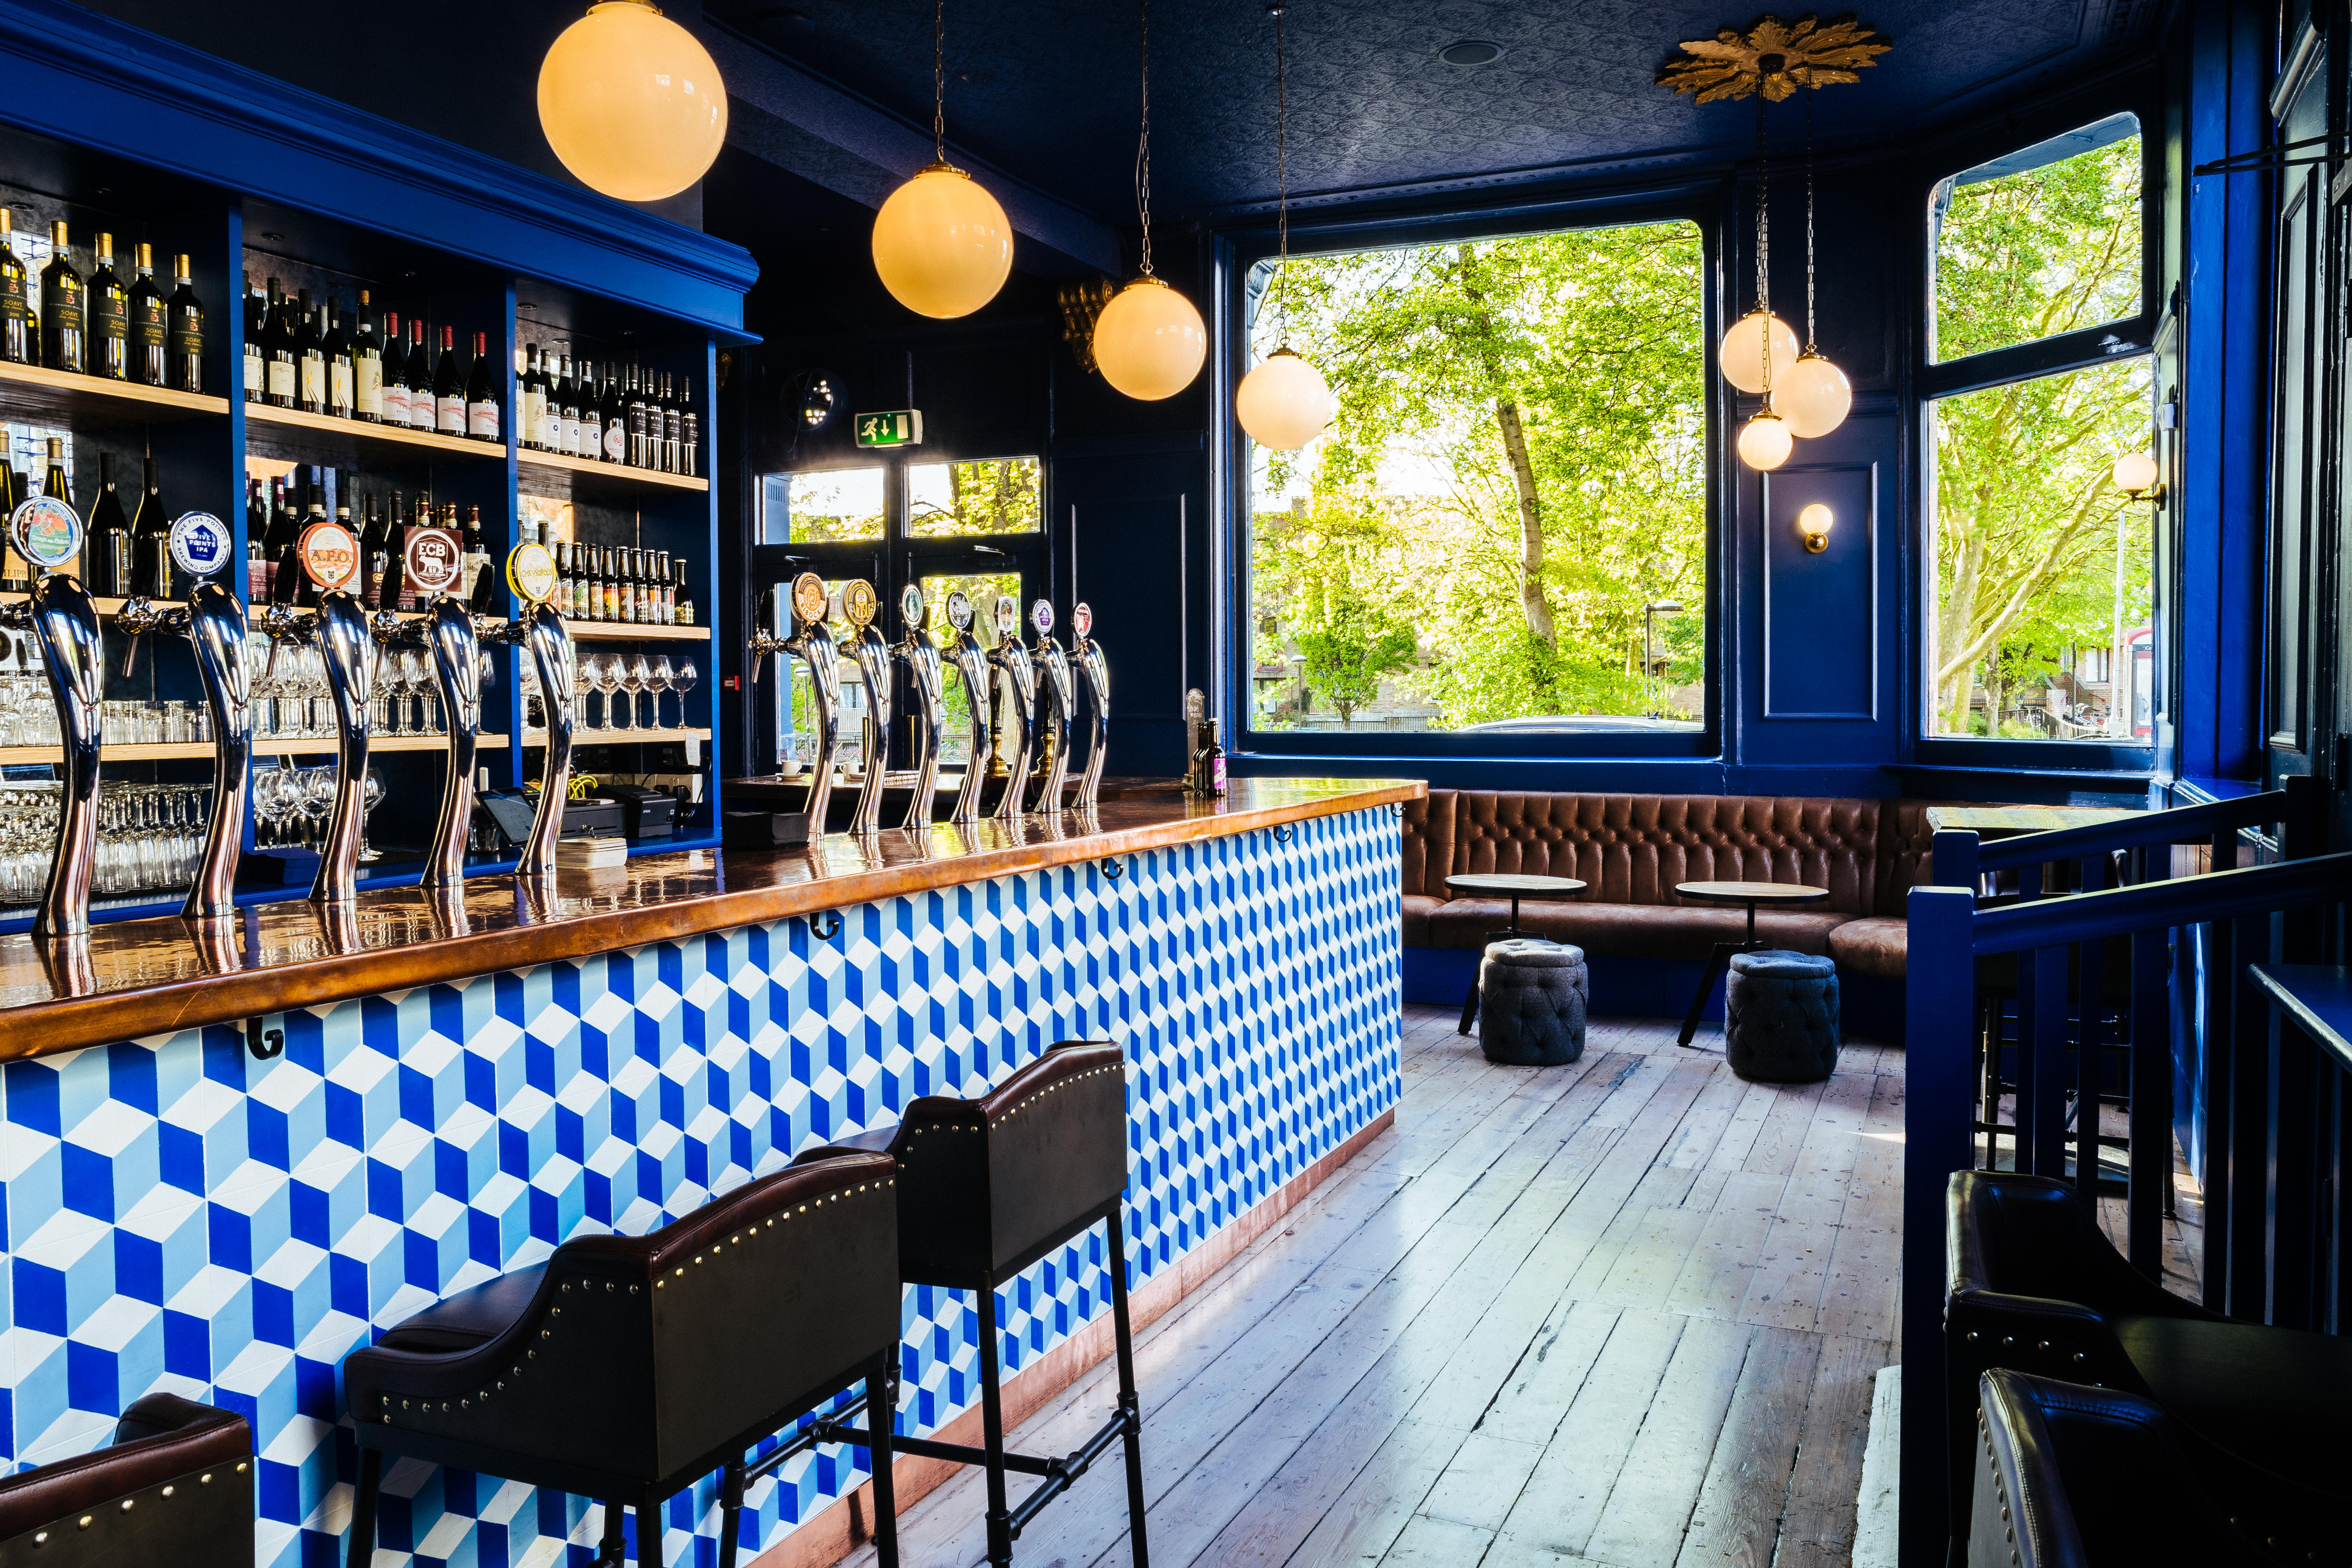 Best private dining spots in London